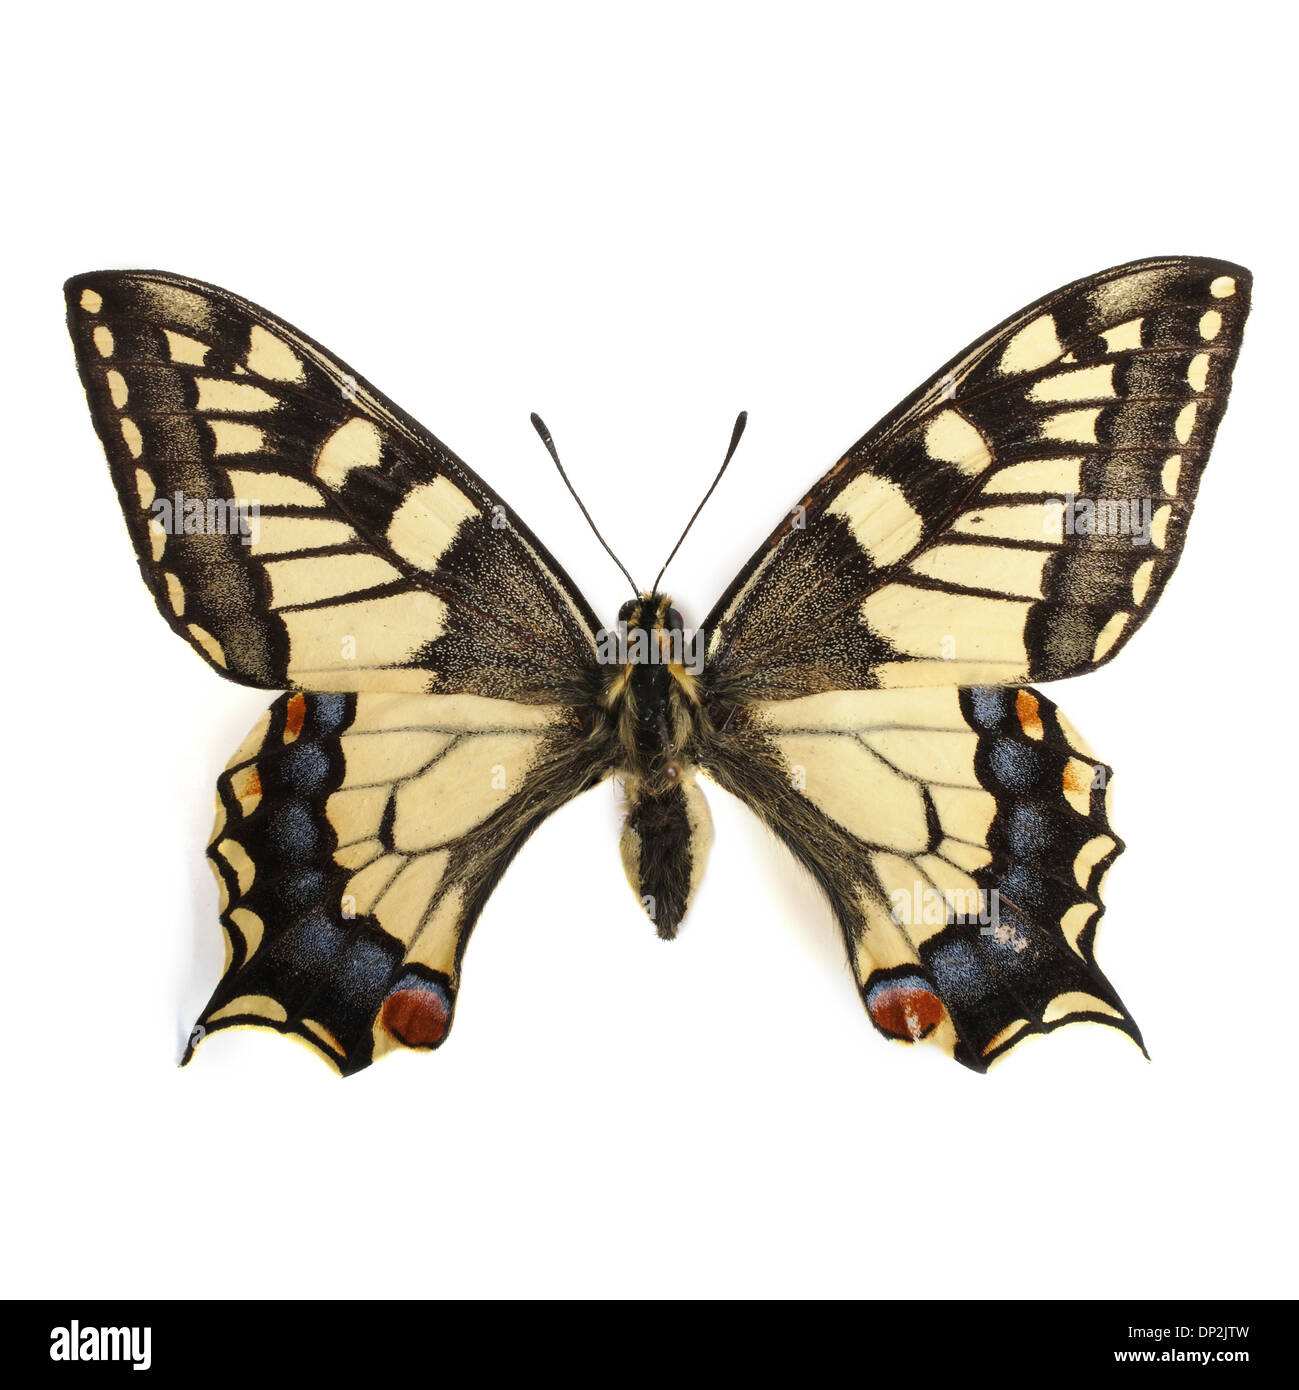 Swallowtail butterfly Photo Stock